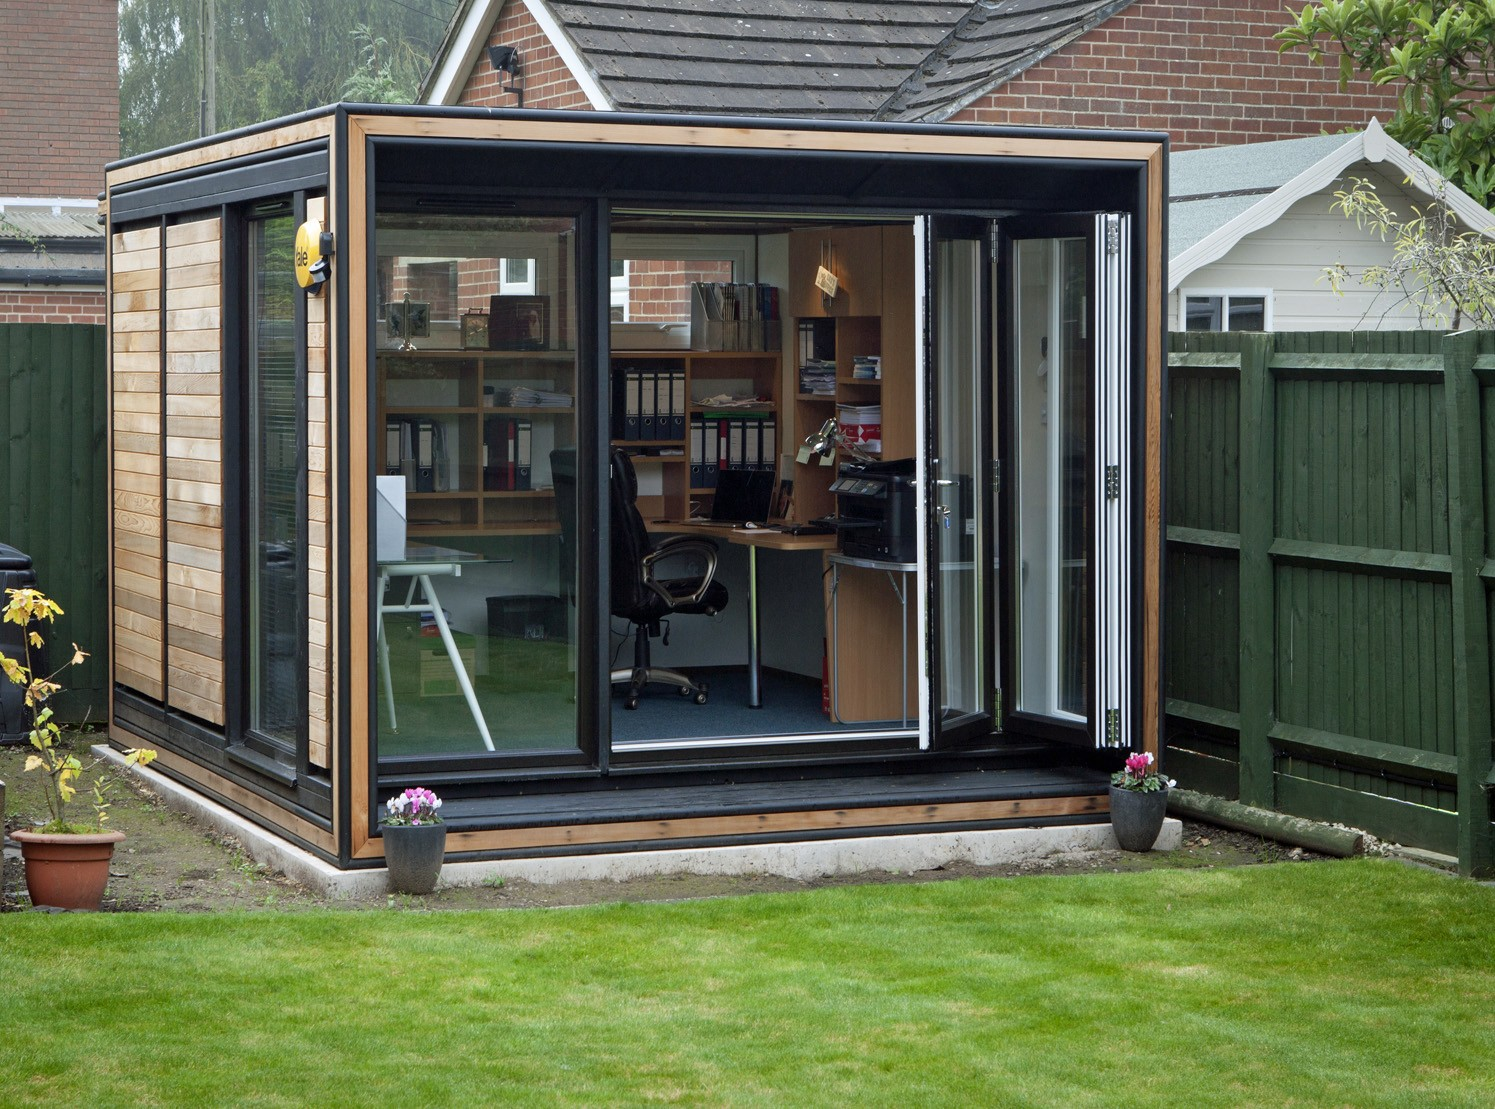 Shedworking the smart garden offices story for Garden office and shed